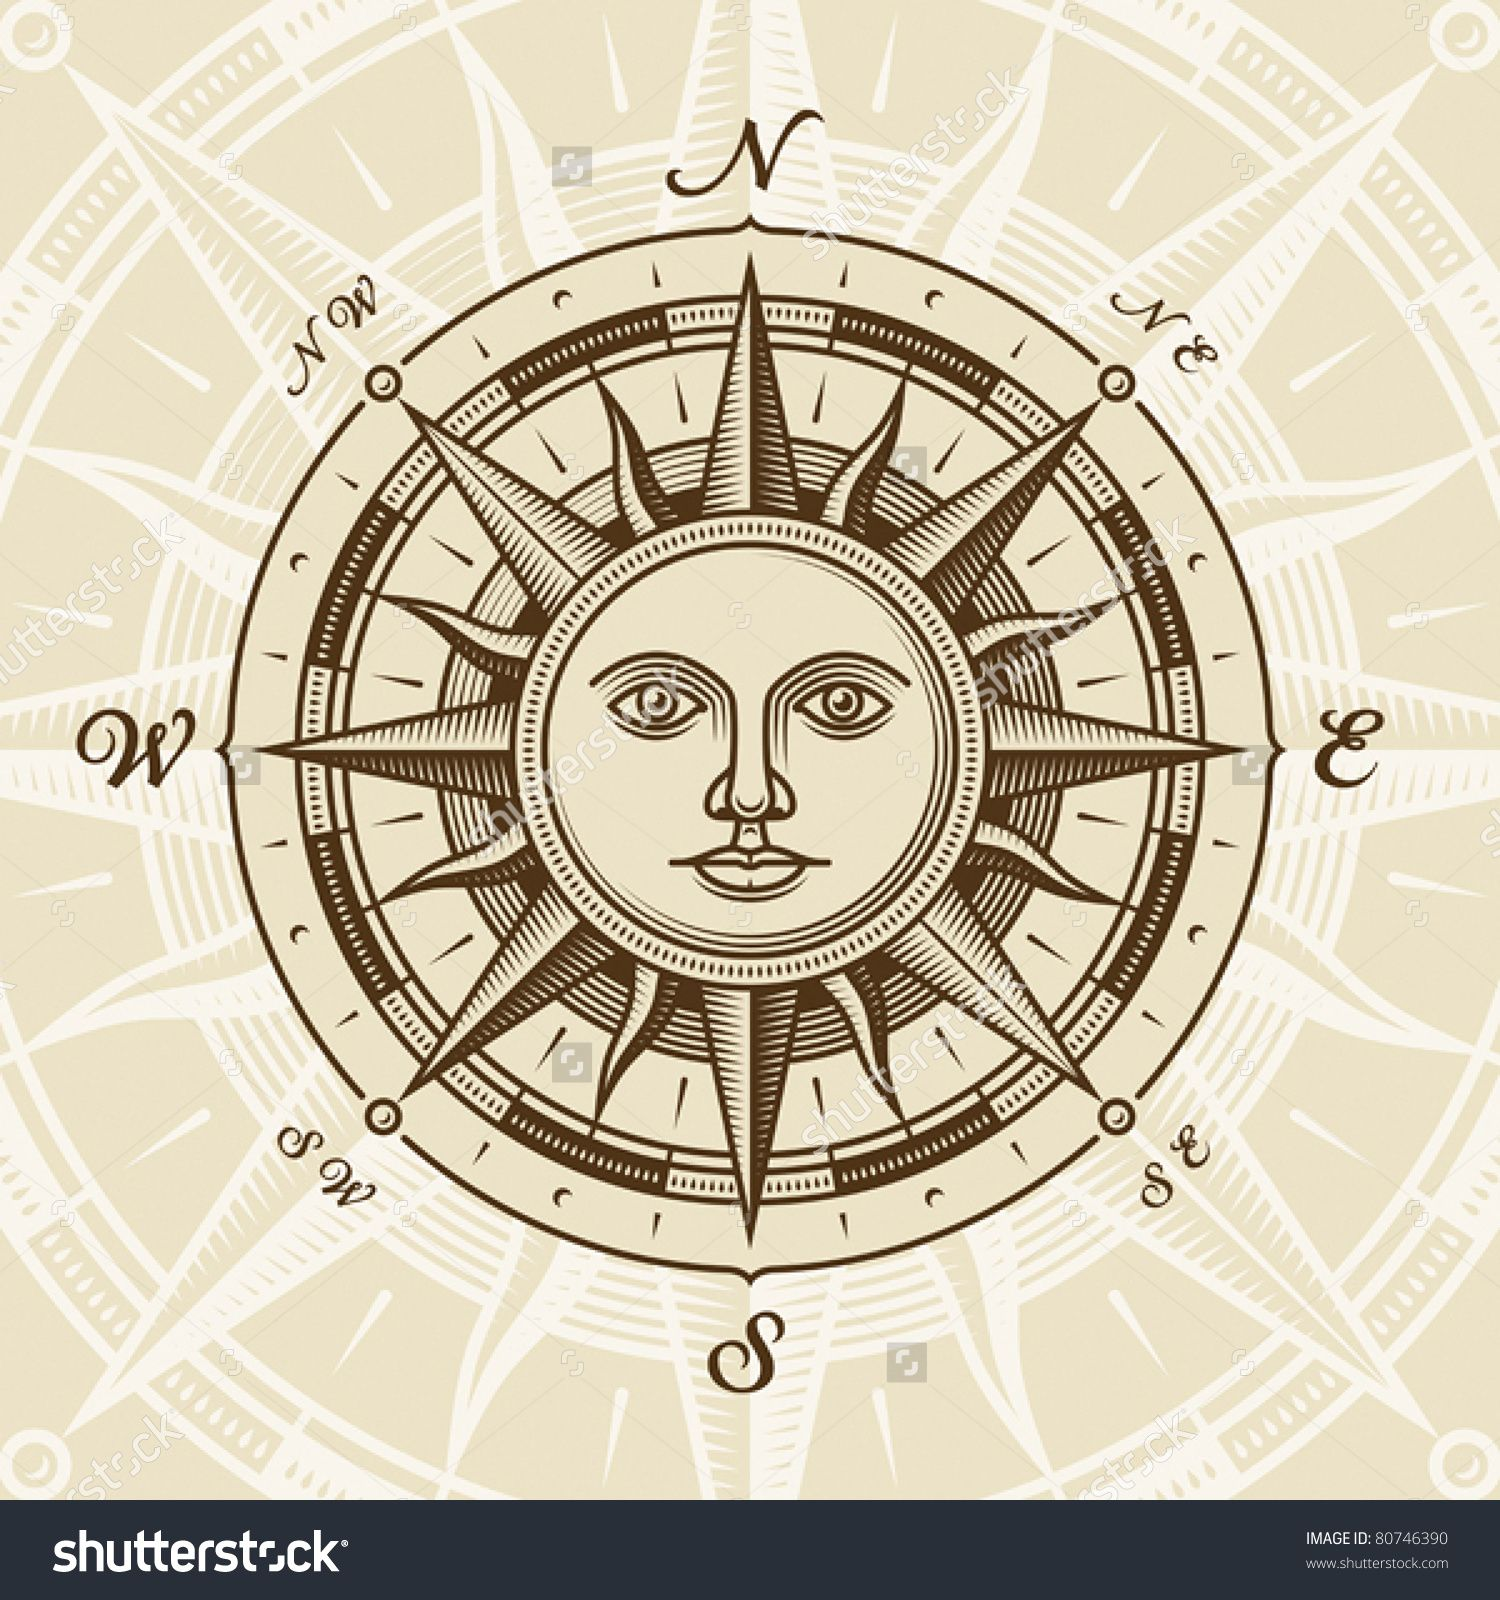 Vintage Sun Compass Rose Vector Compass Rose Tattoo Compass Drawing Compass Rose